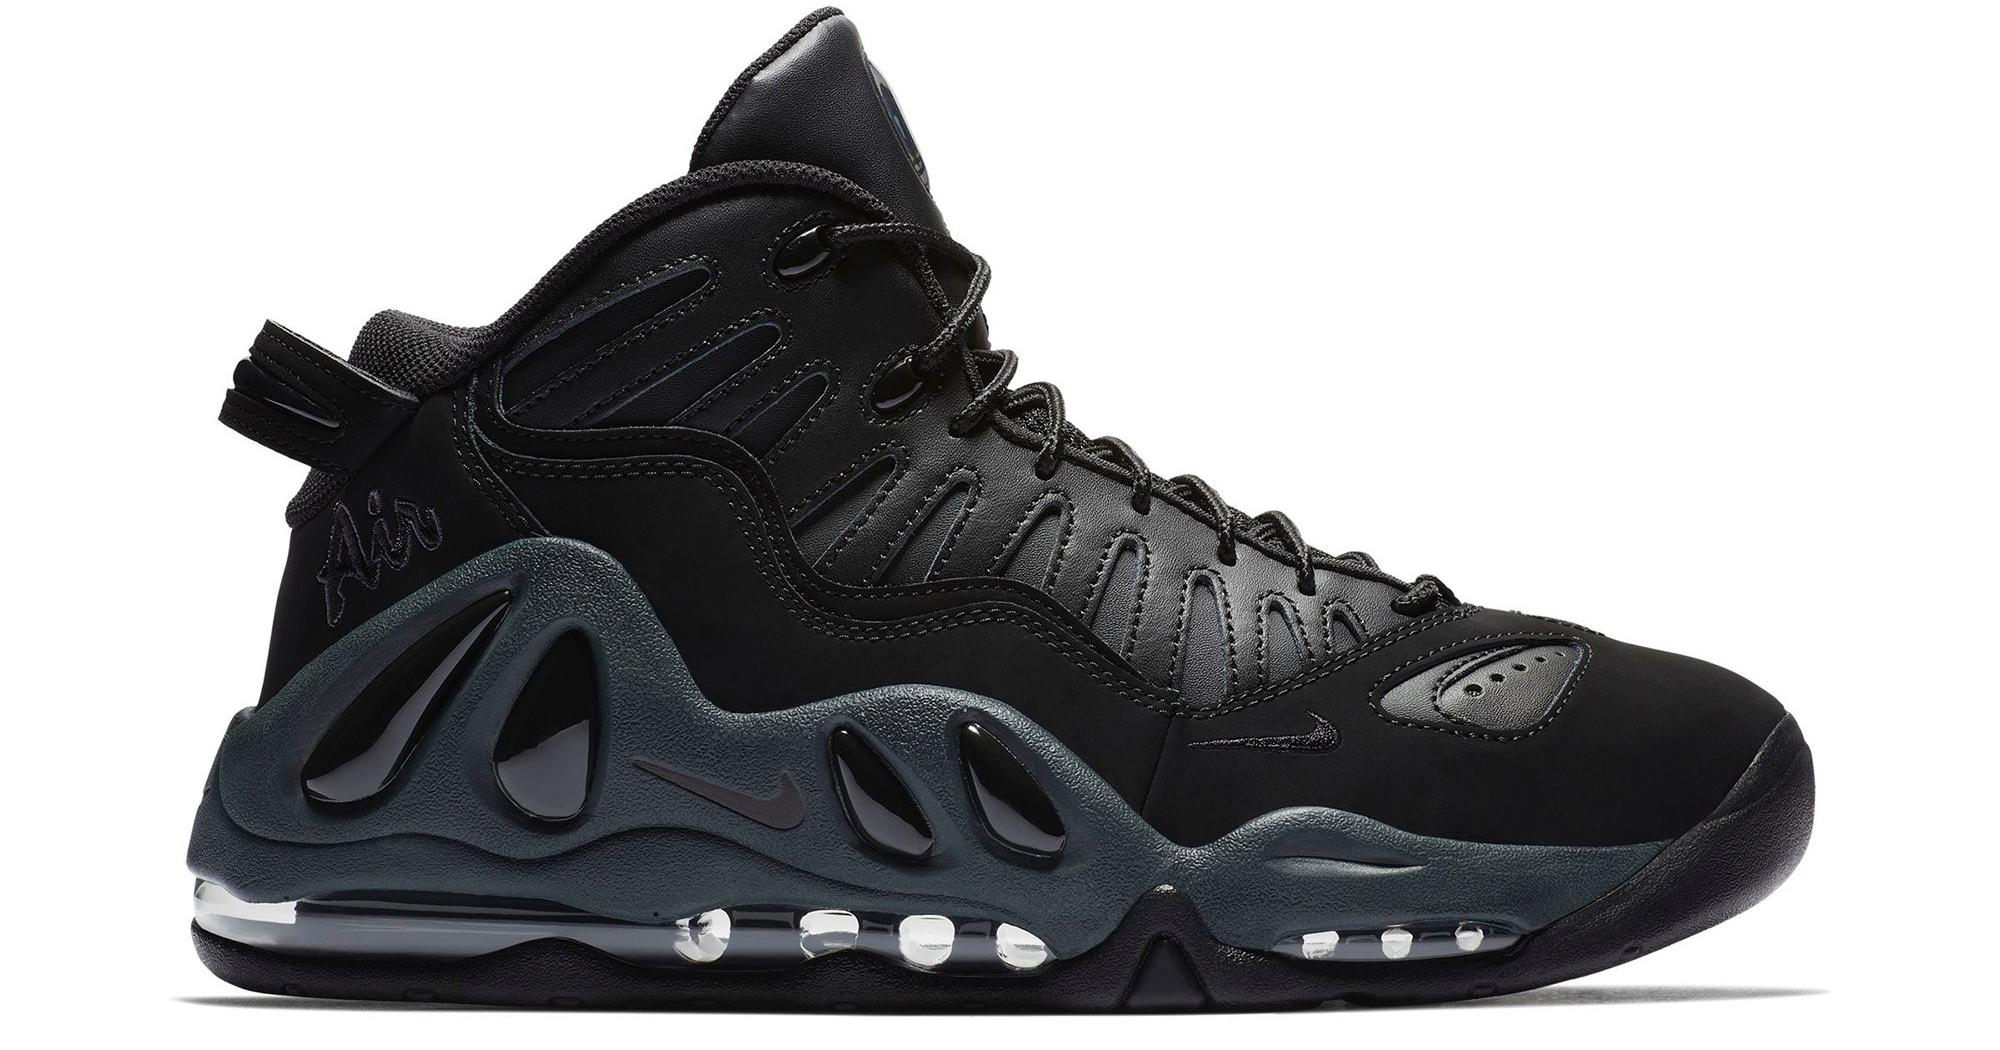 Sneaker Release Men S Nike Air Max Uptempo 97 Basketball Shoe